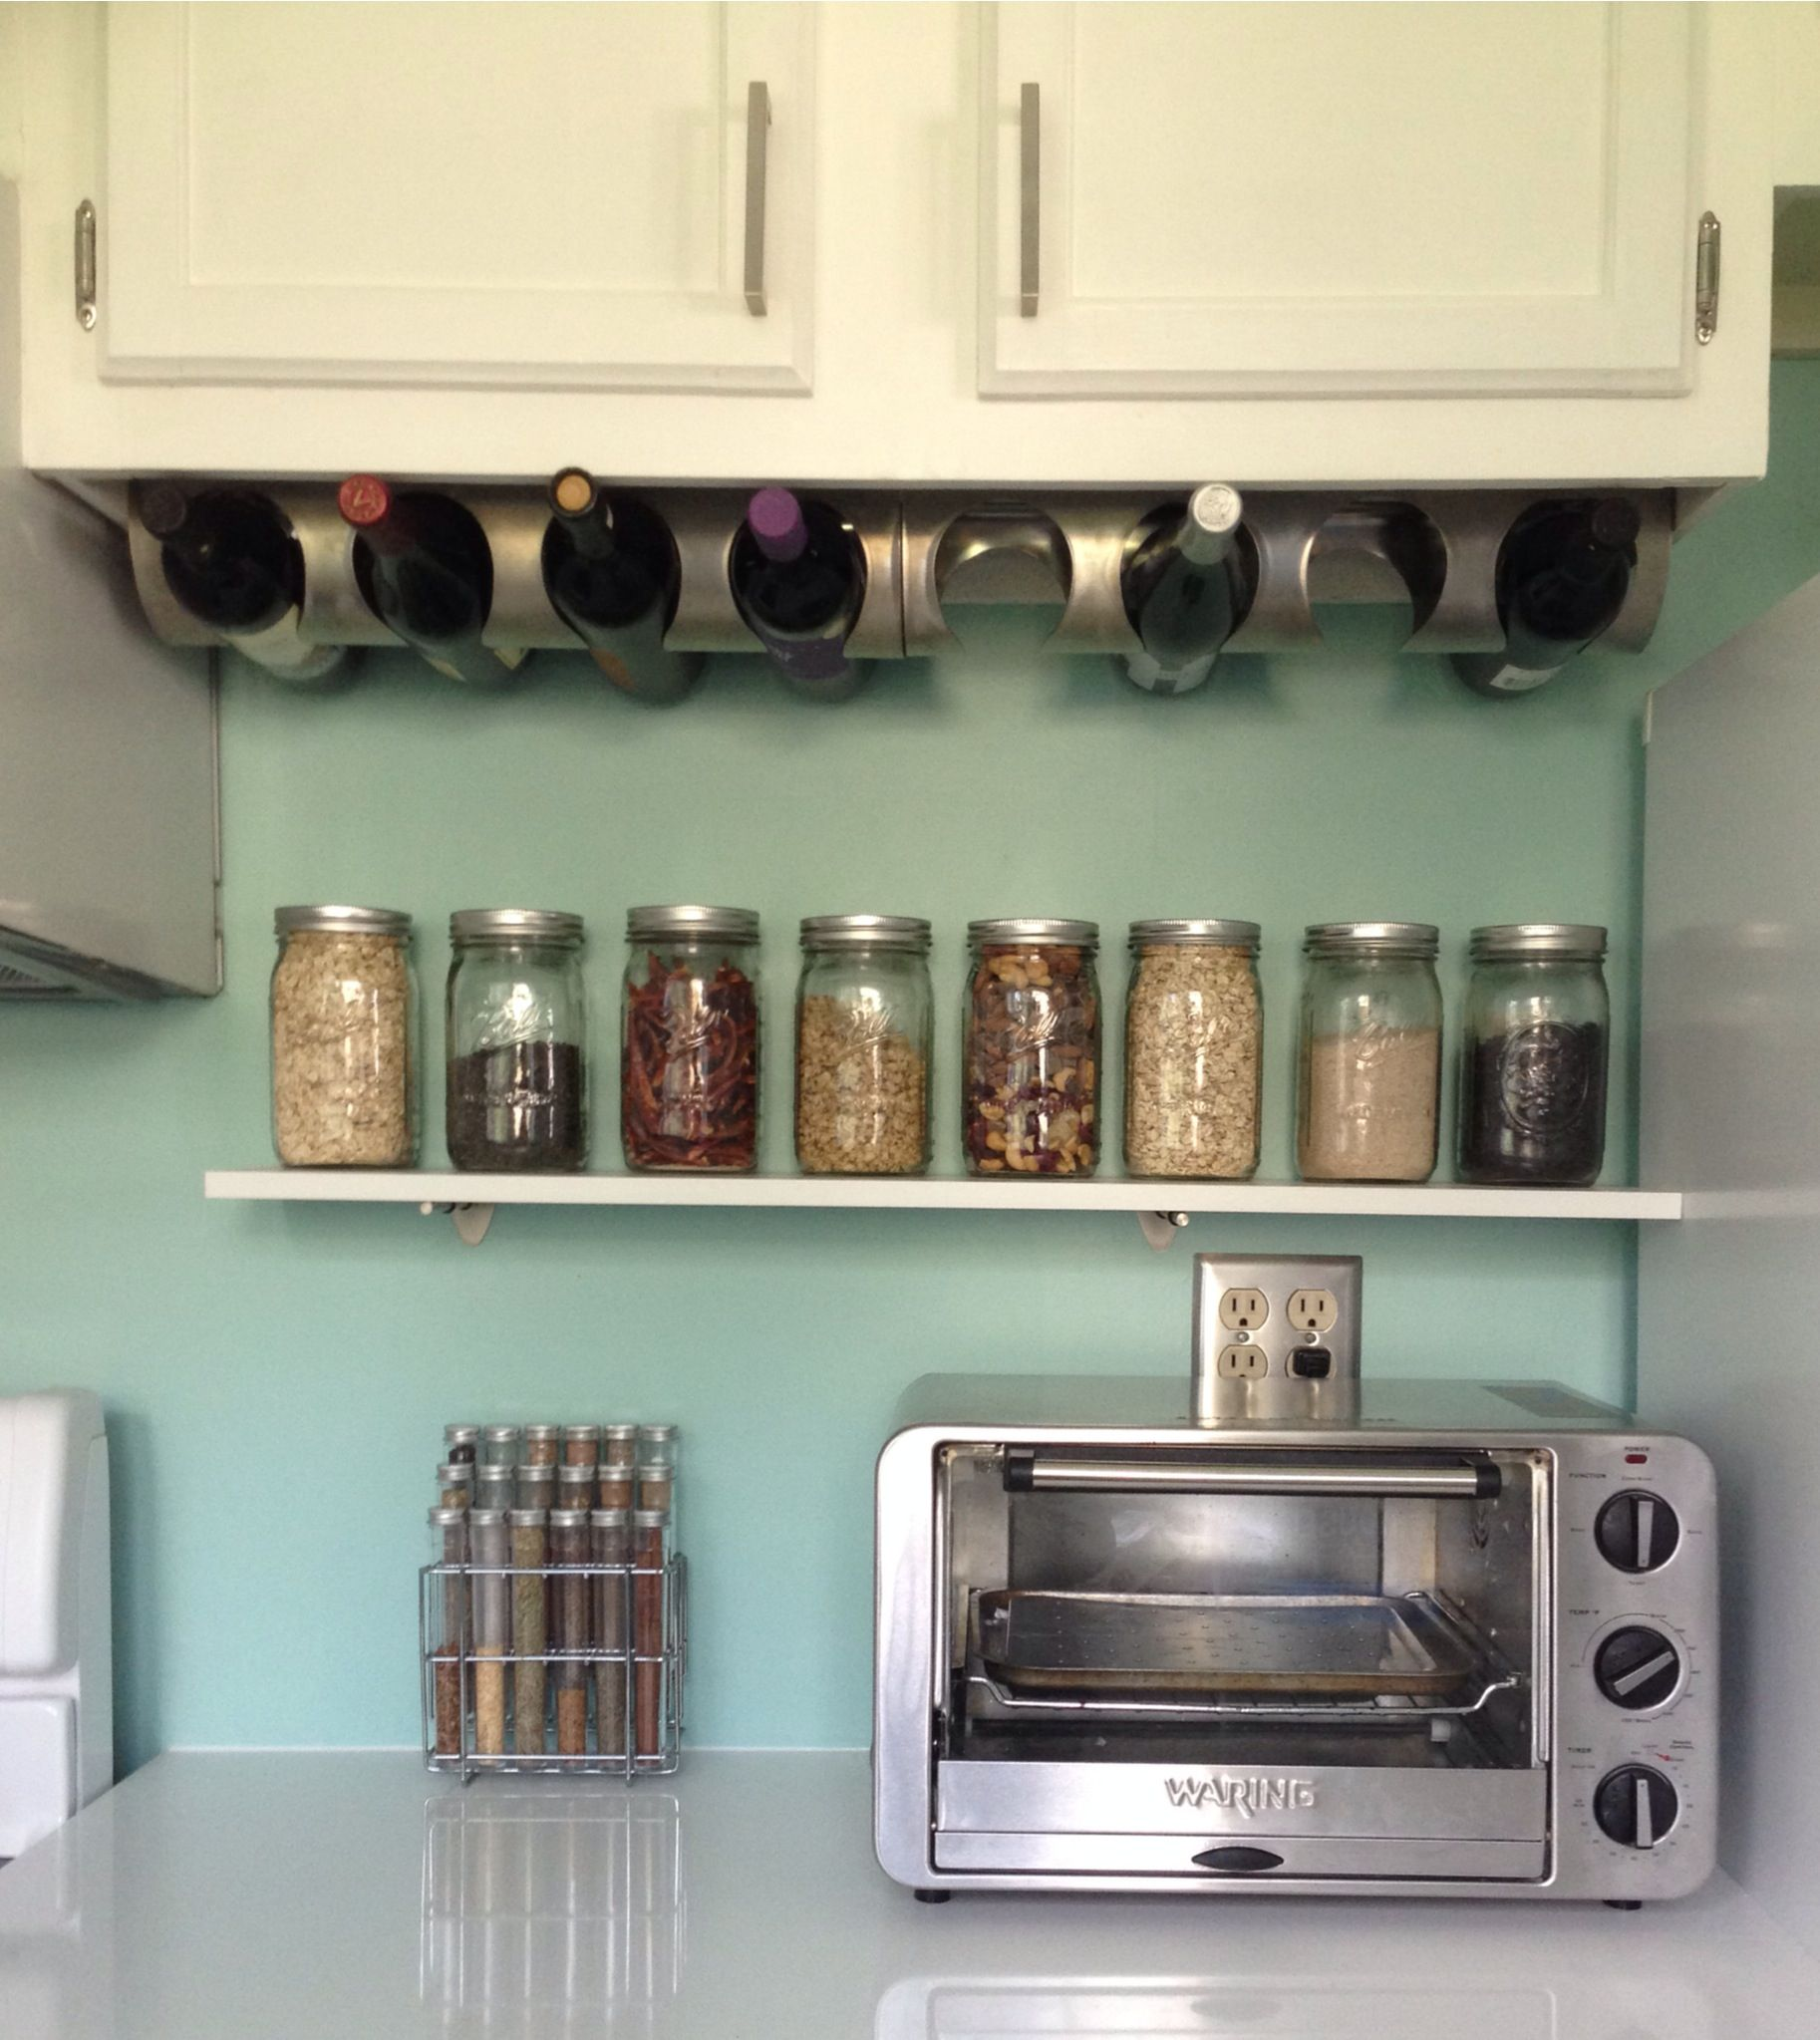 Our Space Saving Solution In Our Little Galley Kitchen